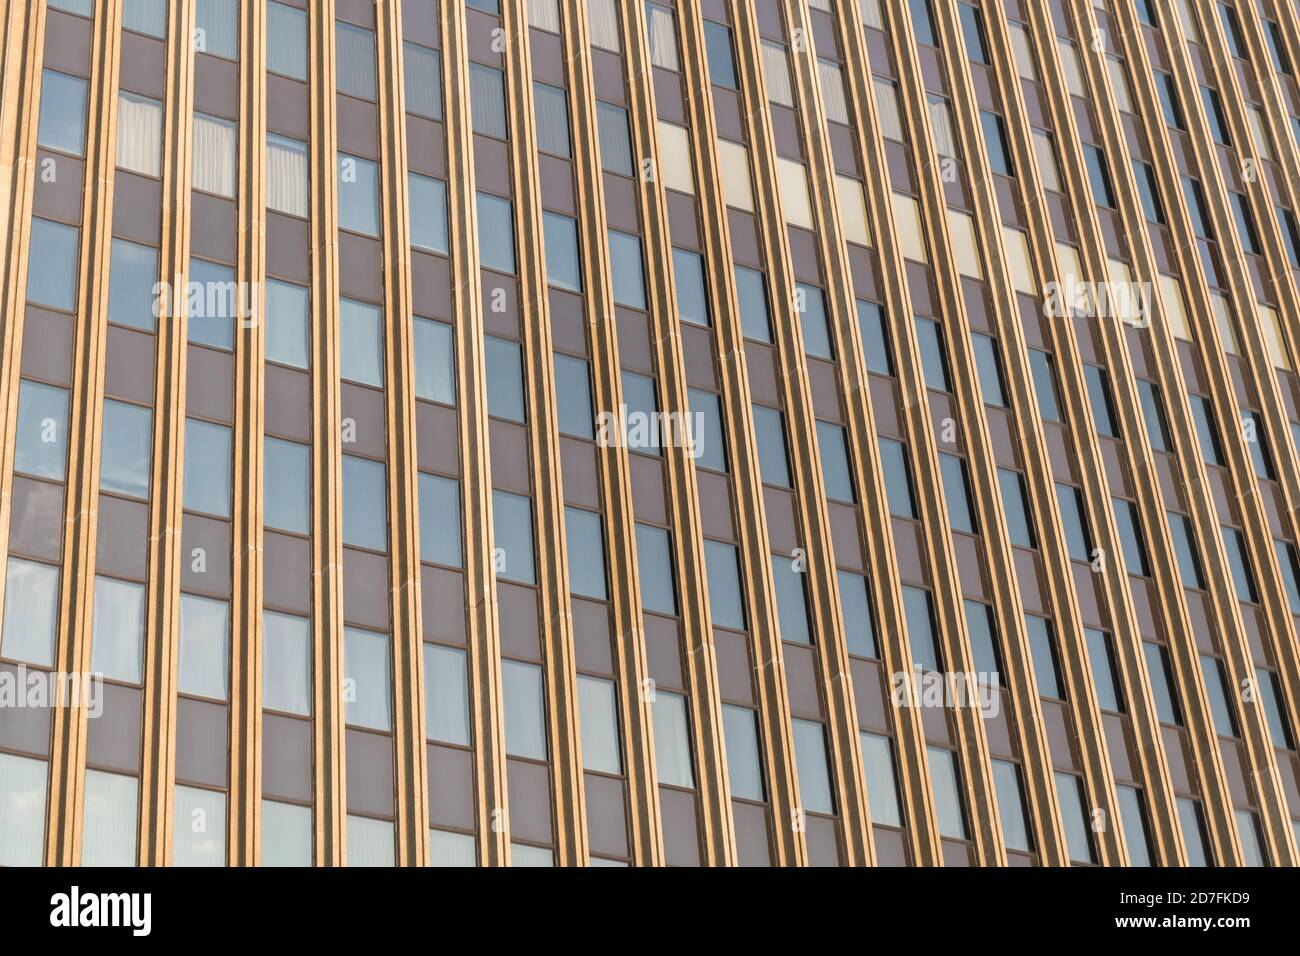 A repeating pattern of windows on a skyscraper. Stock Photo